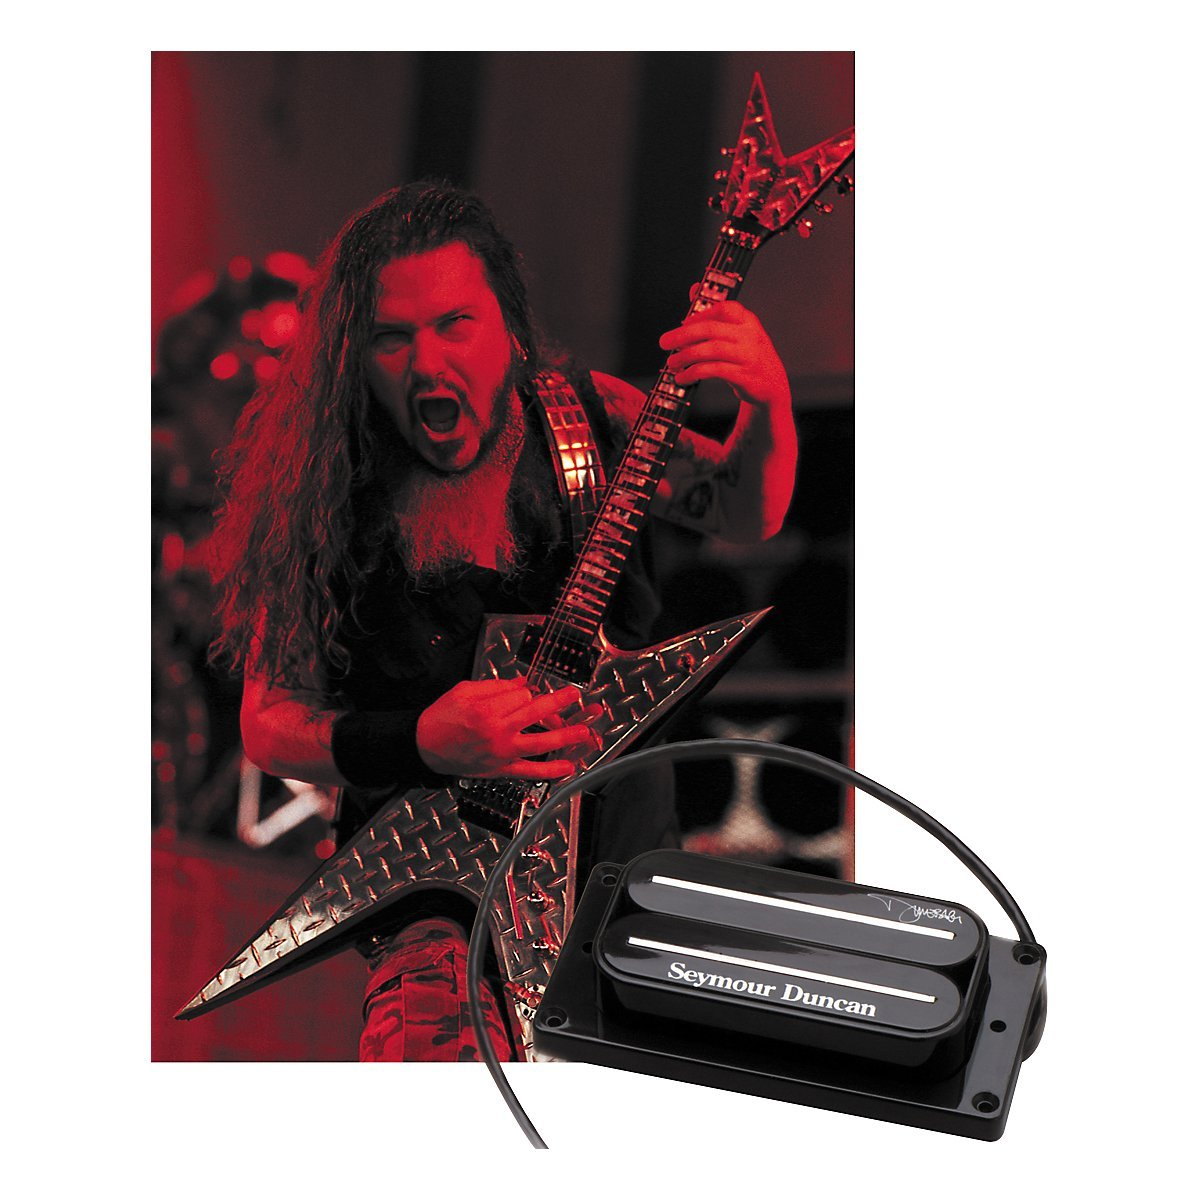 the seymour duncan sh13 dimebucker is a replica of Dimebag's custom humbucker